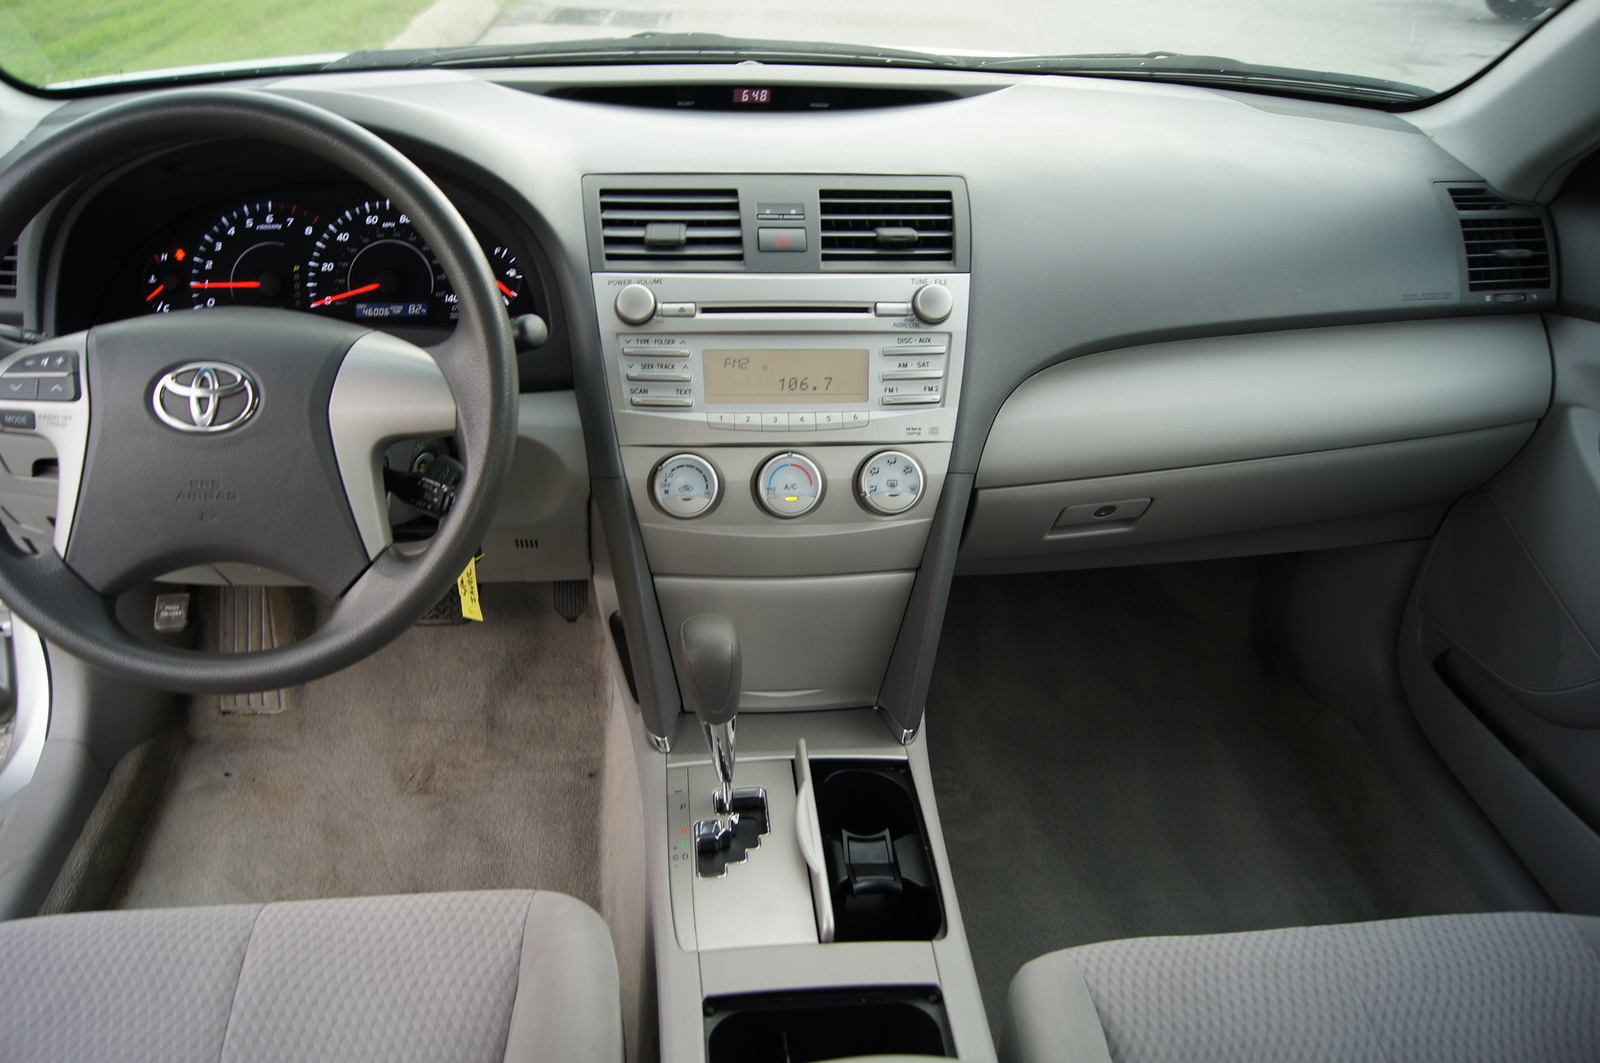 2010 toyota camry interior pictures cargurus. Black Bedroom Furniture Sets. Home Design Ideas